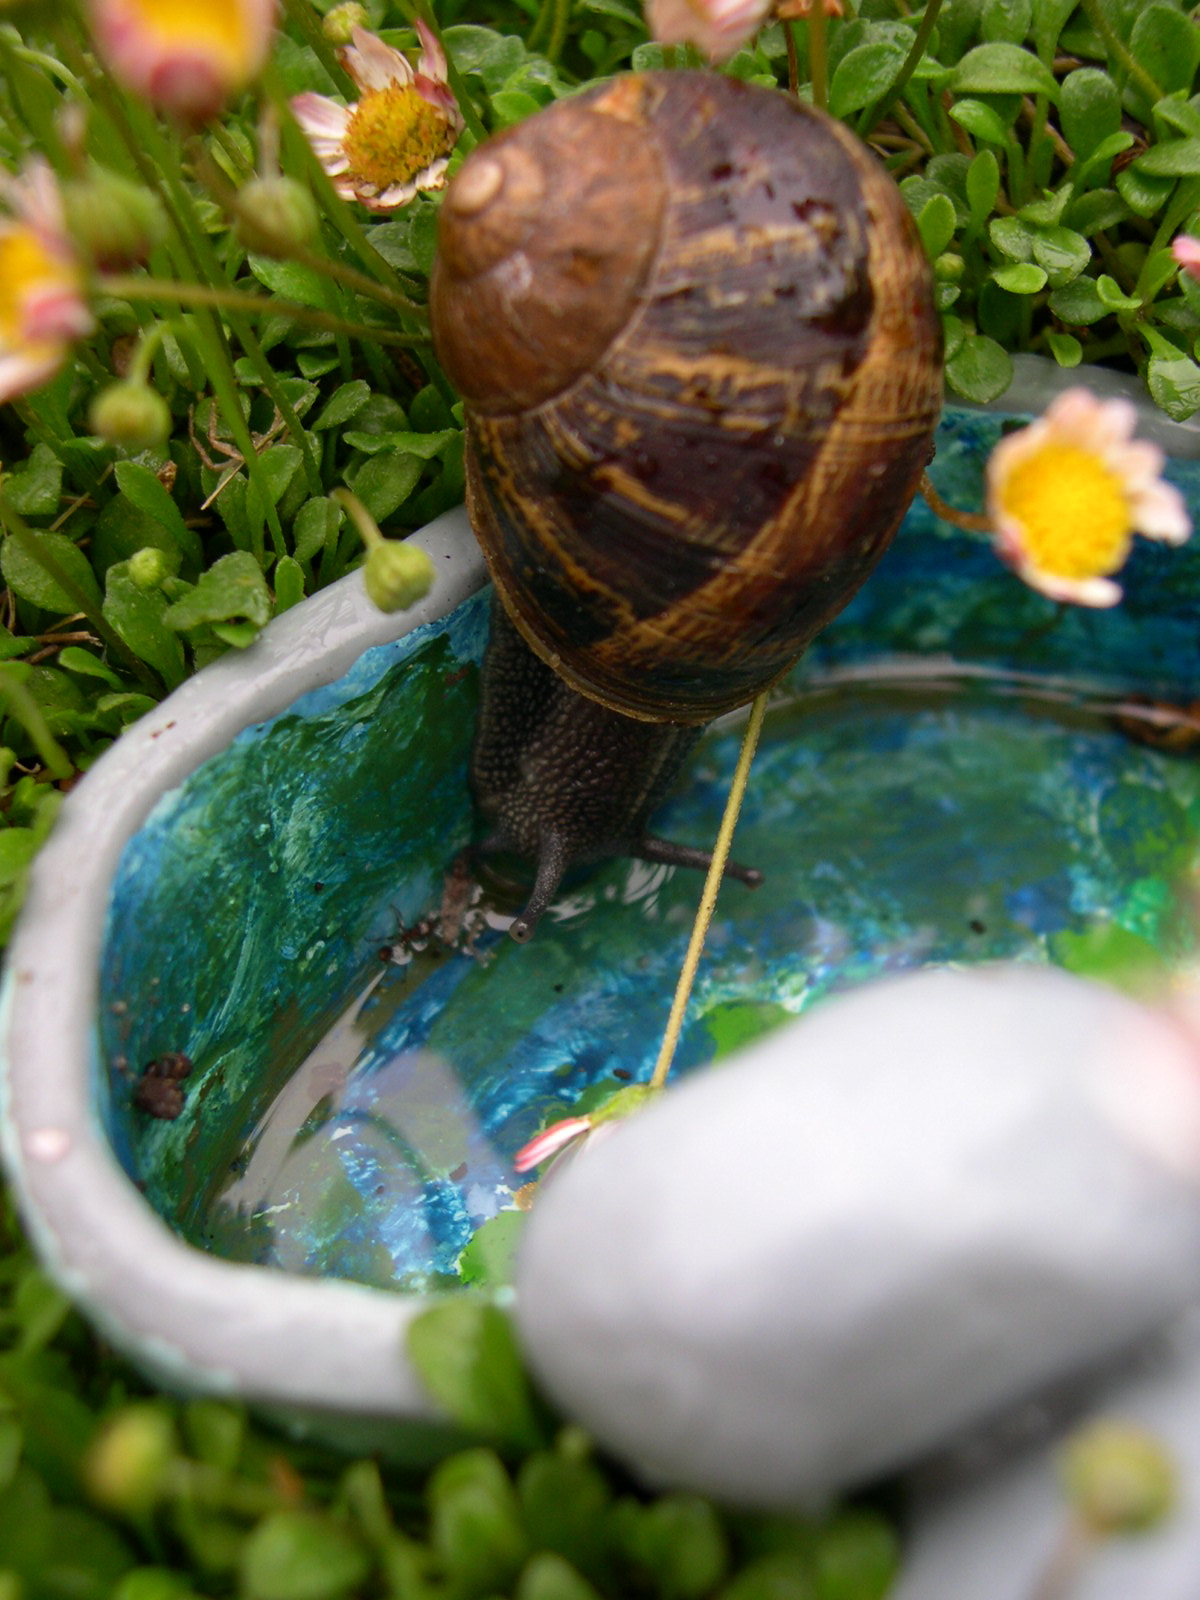 Snail at the Miniature Garden watering hole.